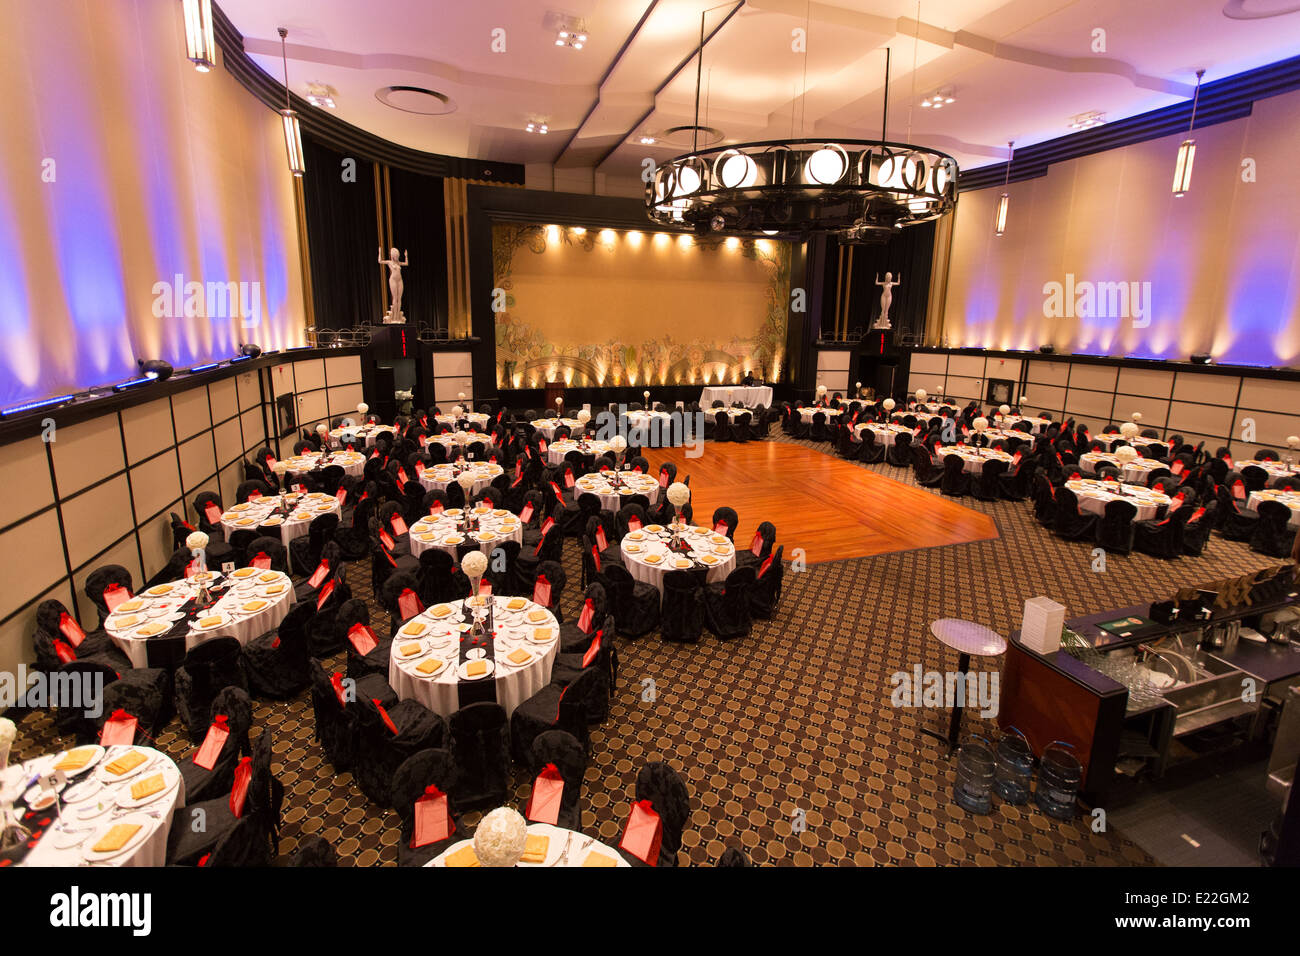 inside banquet hall table setup 'eglinton grand' - Stock Image